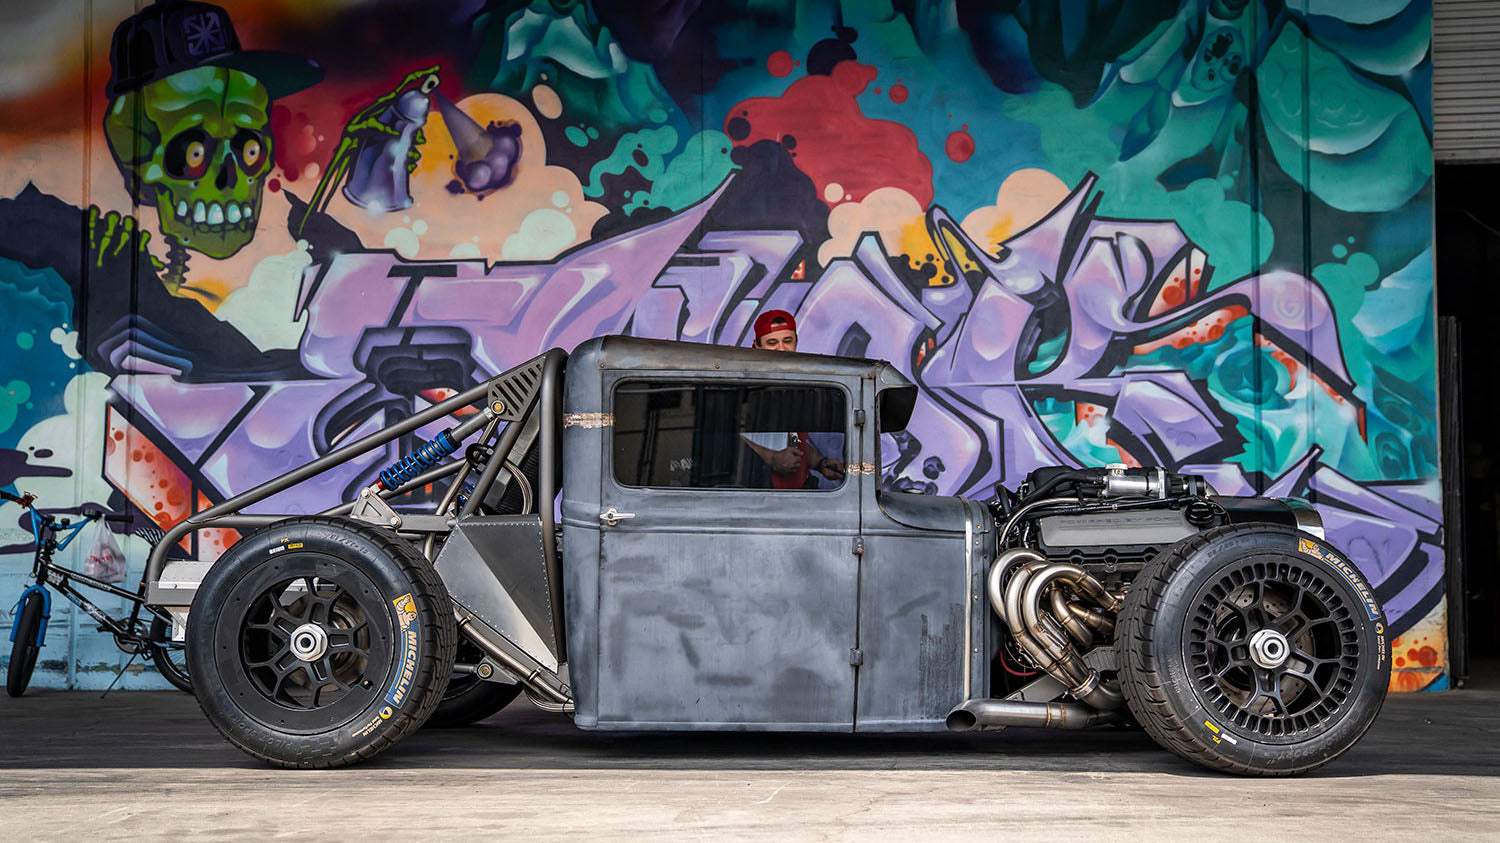 800hp Coyote Powered Hot Rod    on LeMans Wheels?? Mike